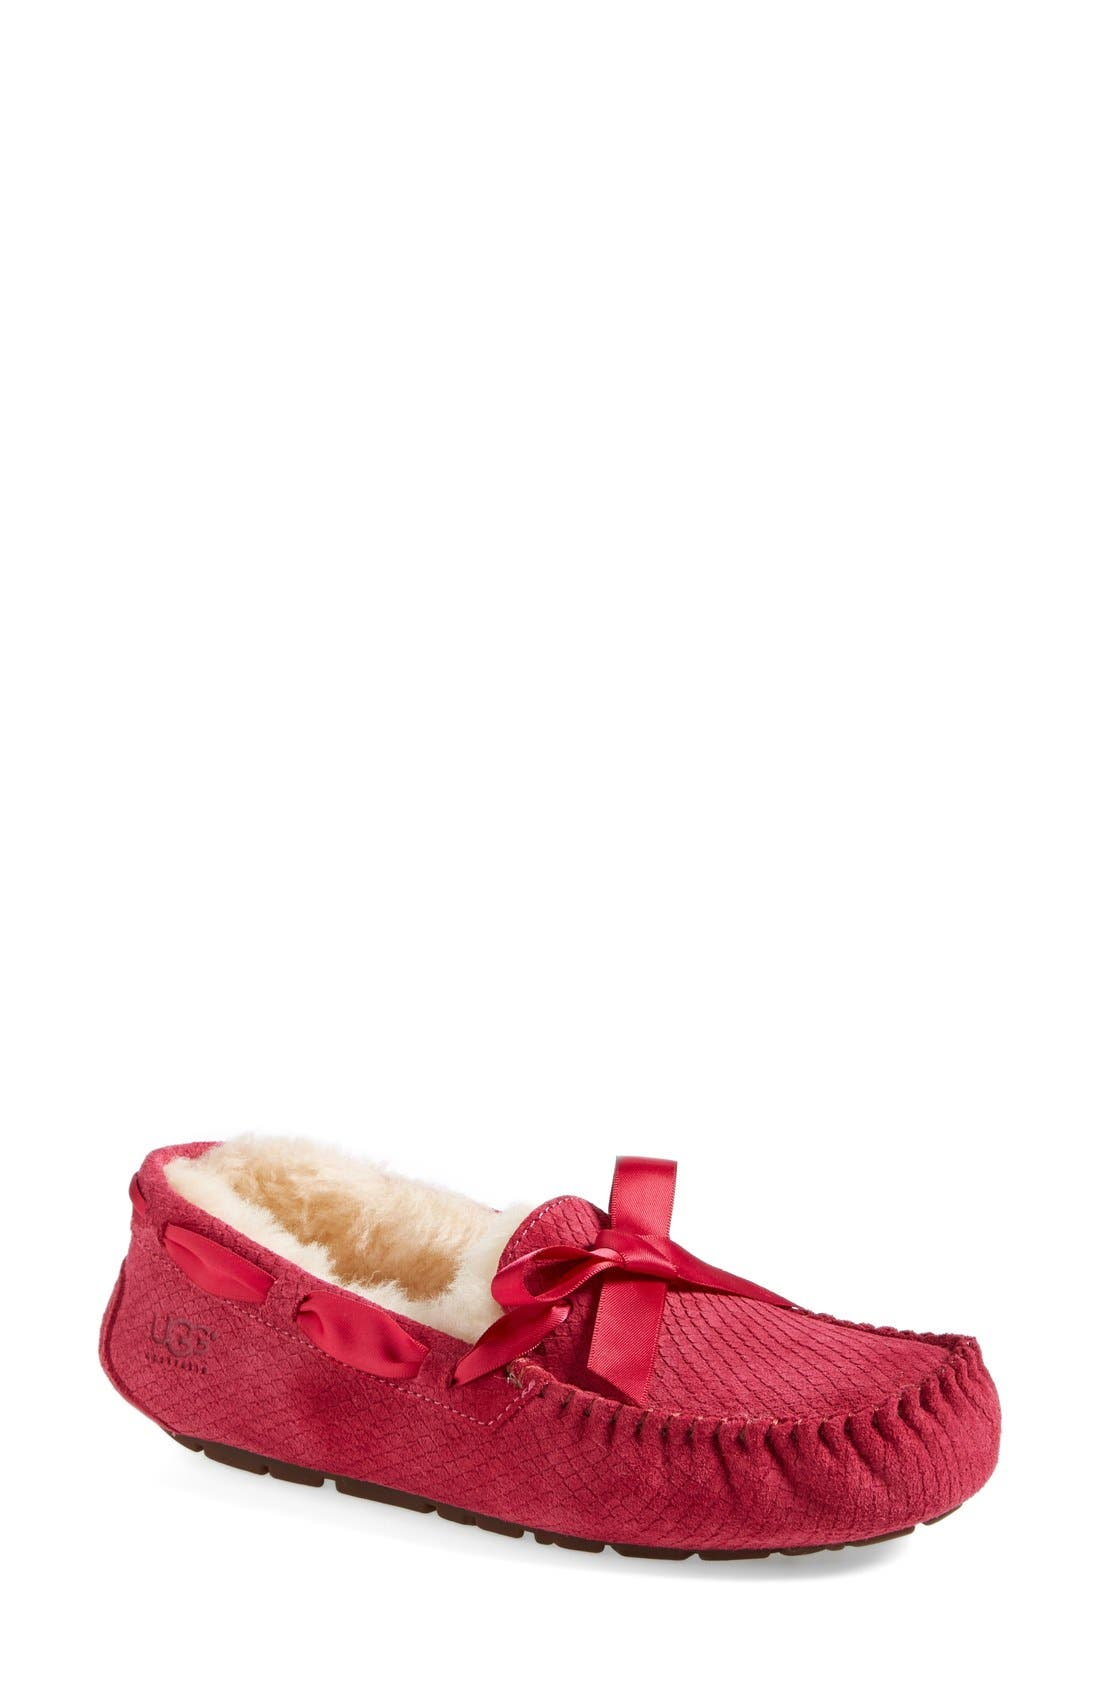 Alternate Image 1 Selected - UGG® Australia 'Dakota - Exotic Scales' Suede Slipper (Women)